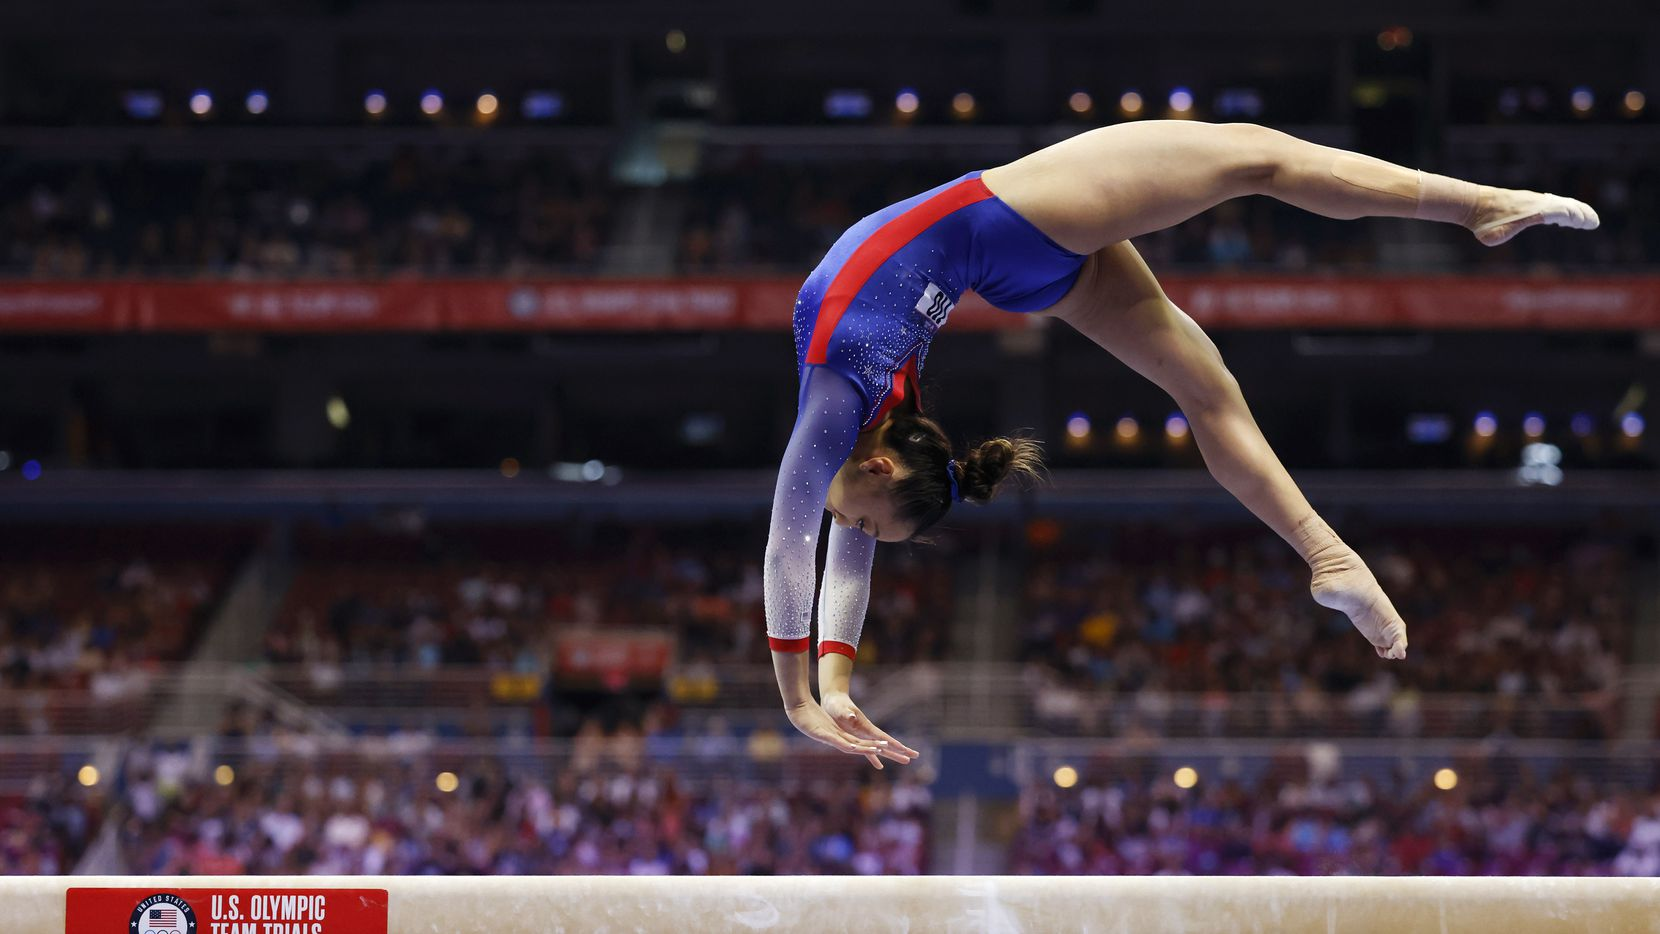 Emma Malabuyo of Texas Dreams competes on the balance beam during day 1 of the women's 2021 U.S. Olympic Trials at America's Center on Friday, June 25, 2021 in St Louis, Missouri.